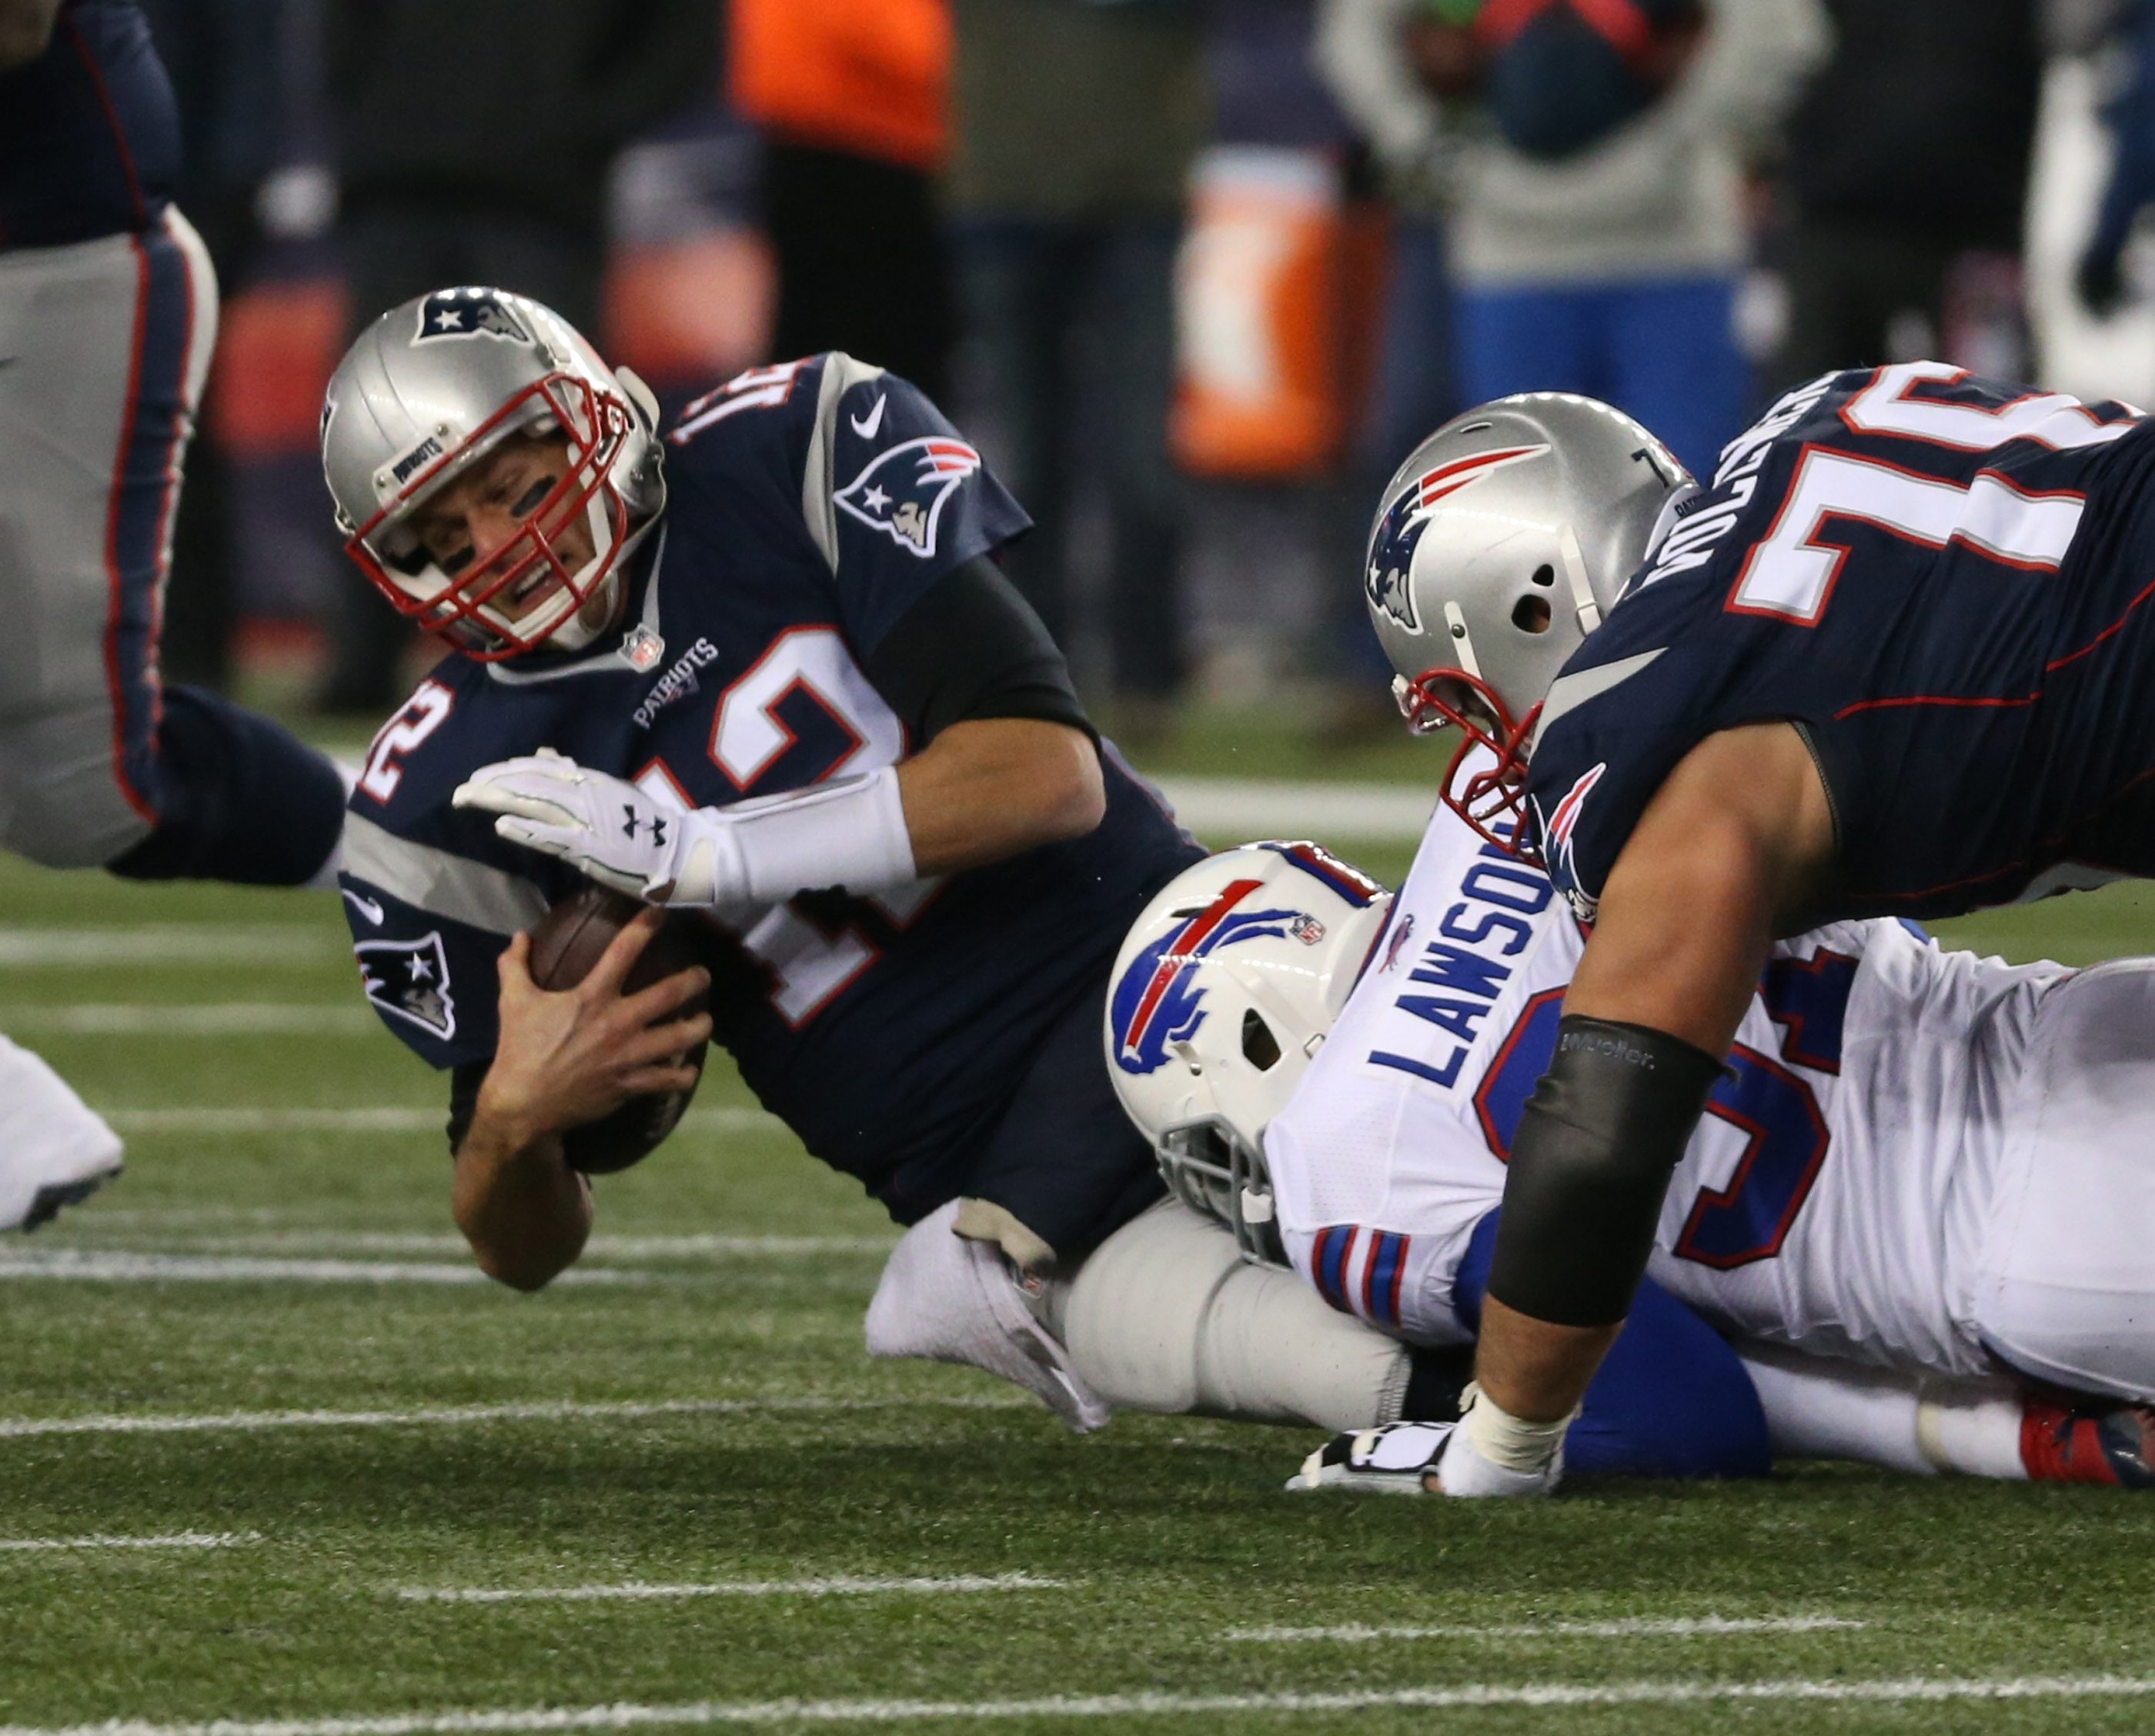 Coach Rex Ryan's defensive scheme worked well in New England on Monday night, frustrating and confusing Tom Brady.